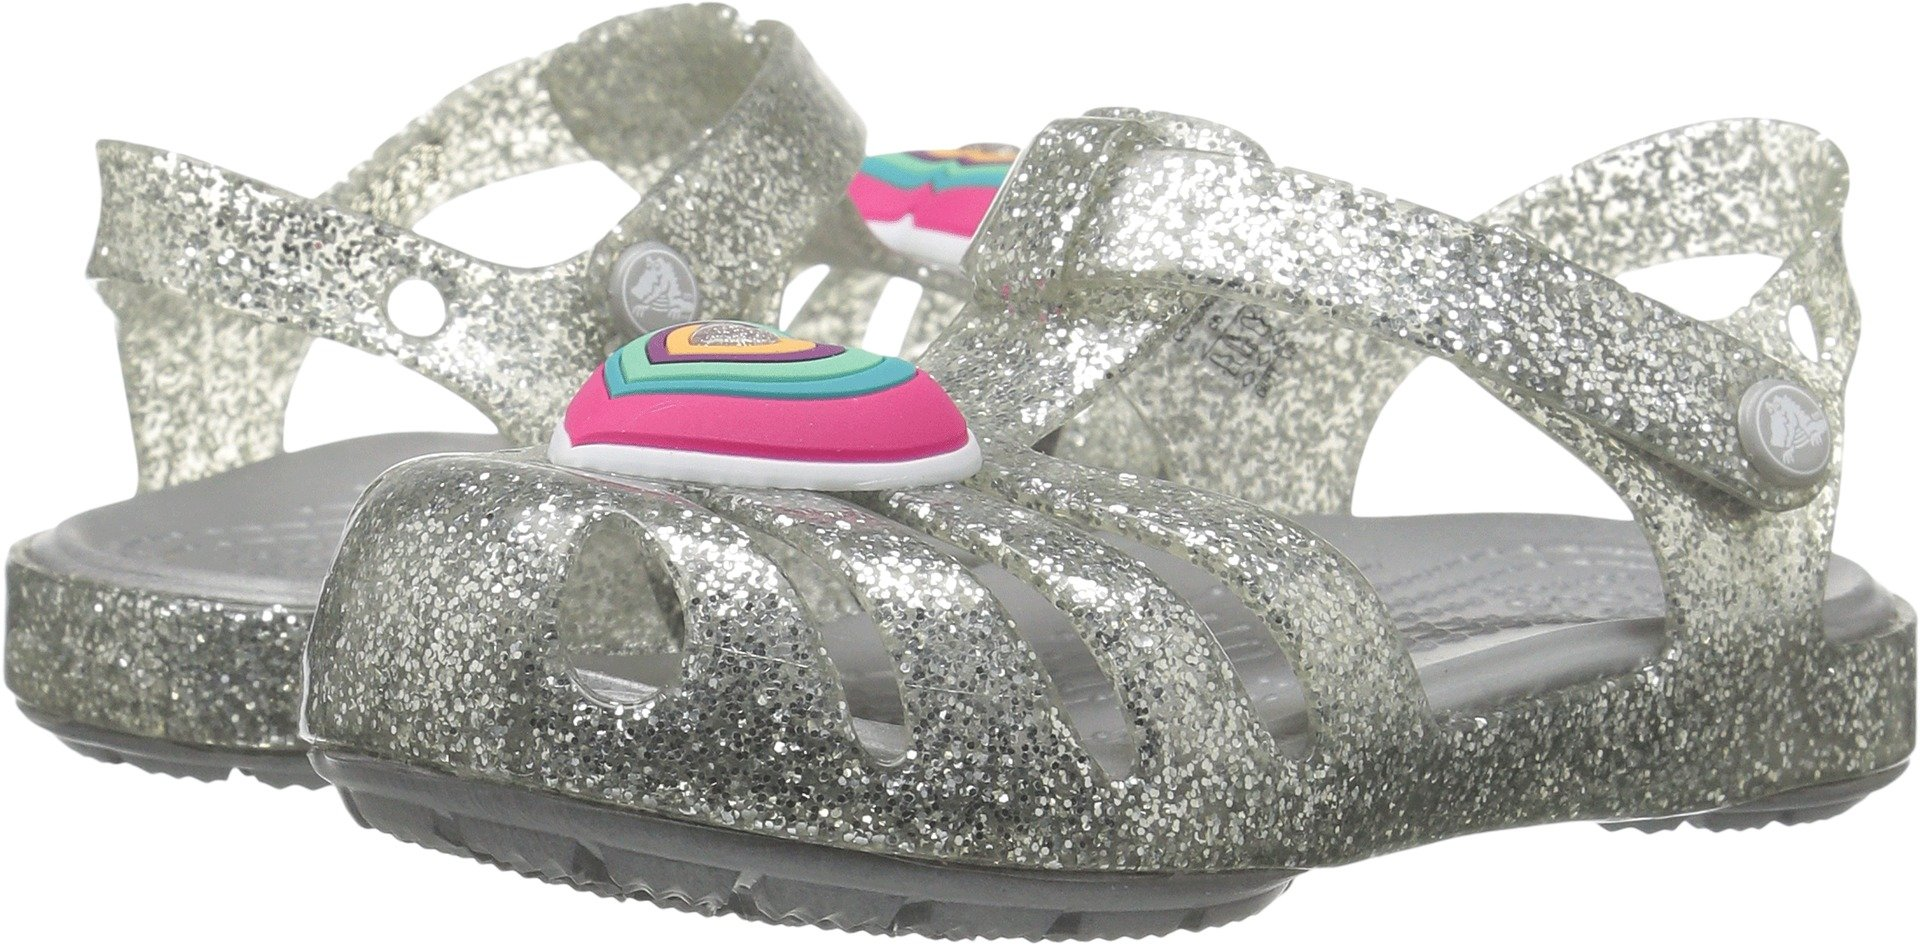 Crocs Girls' Isabella Novelty Flat Sandal, Silver, 9 M US Toddler